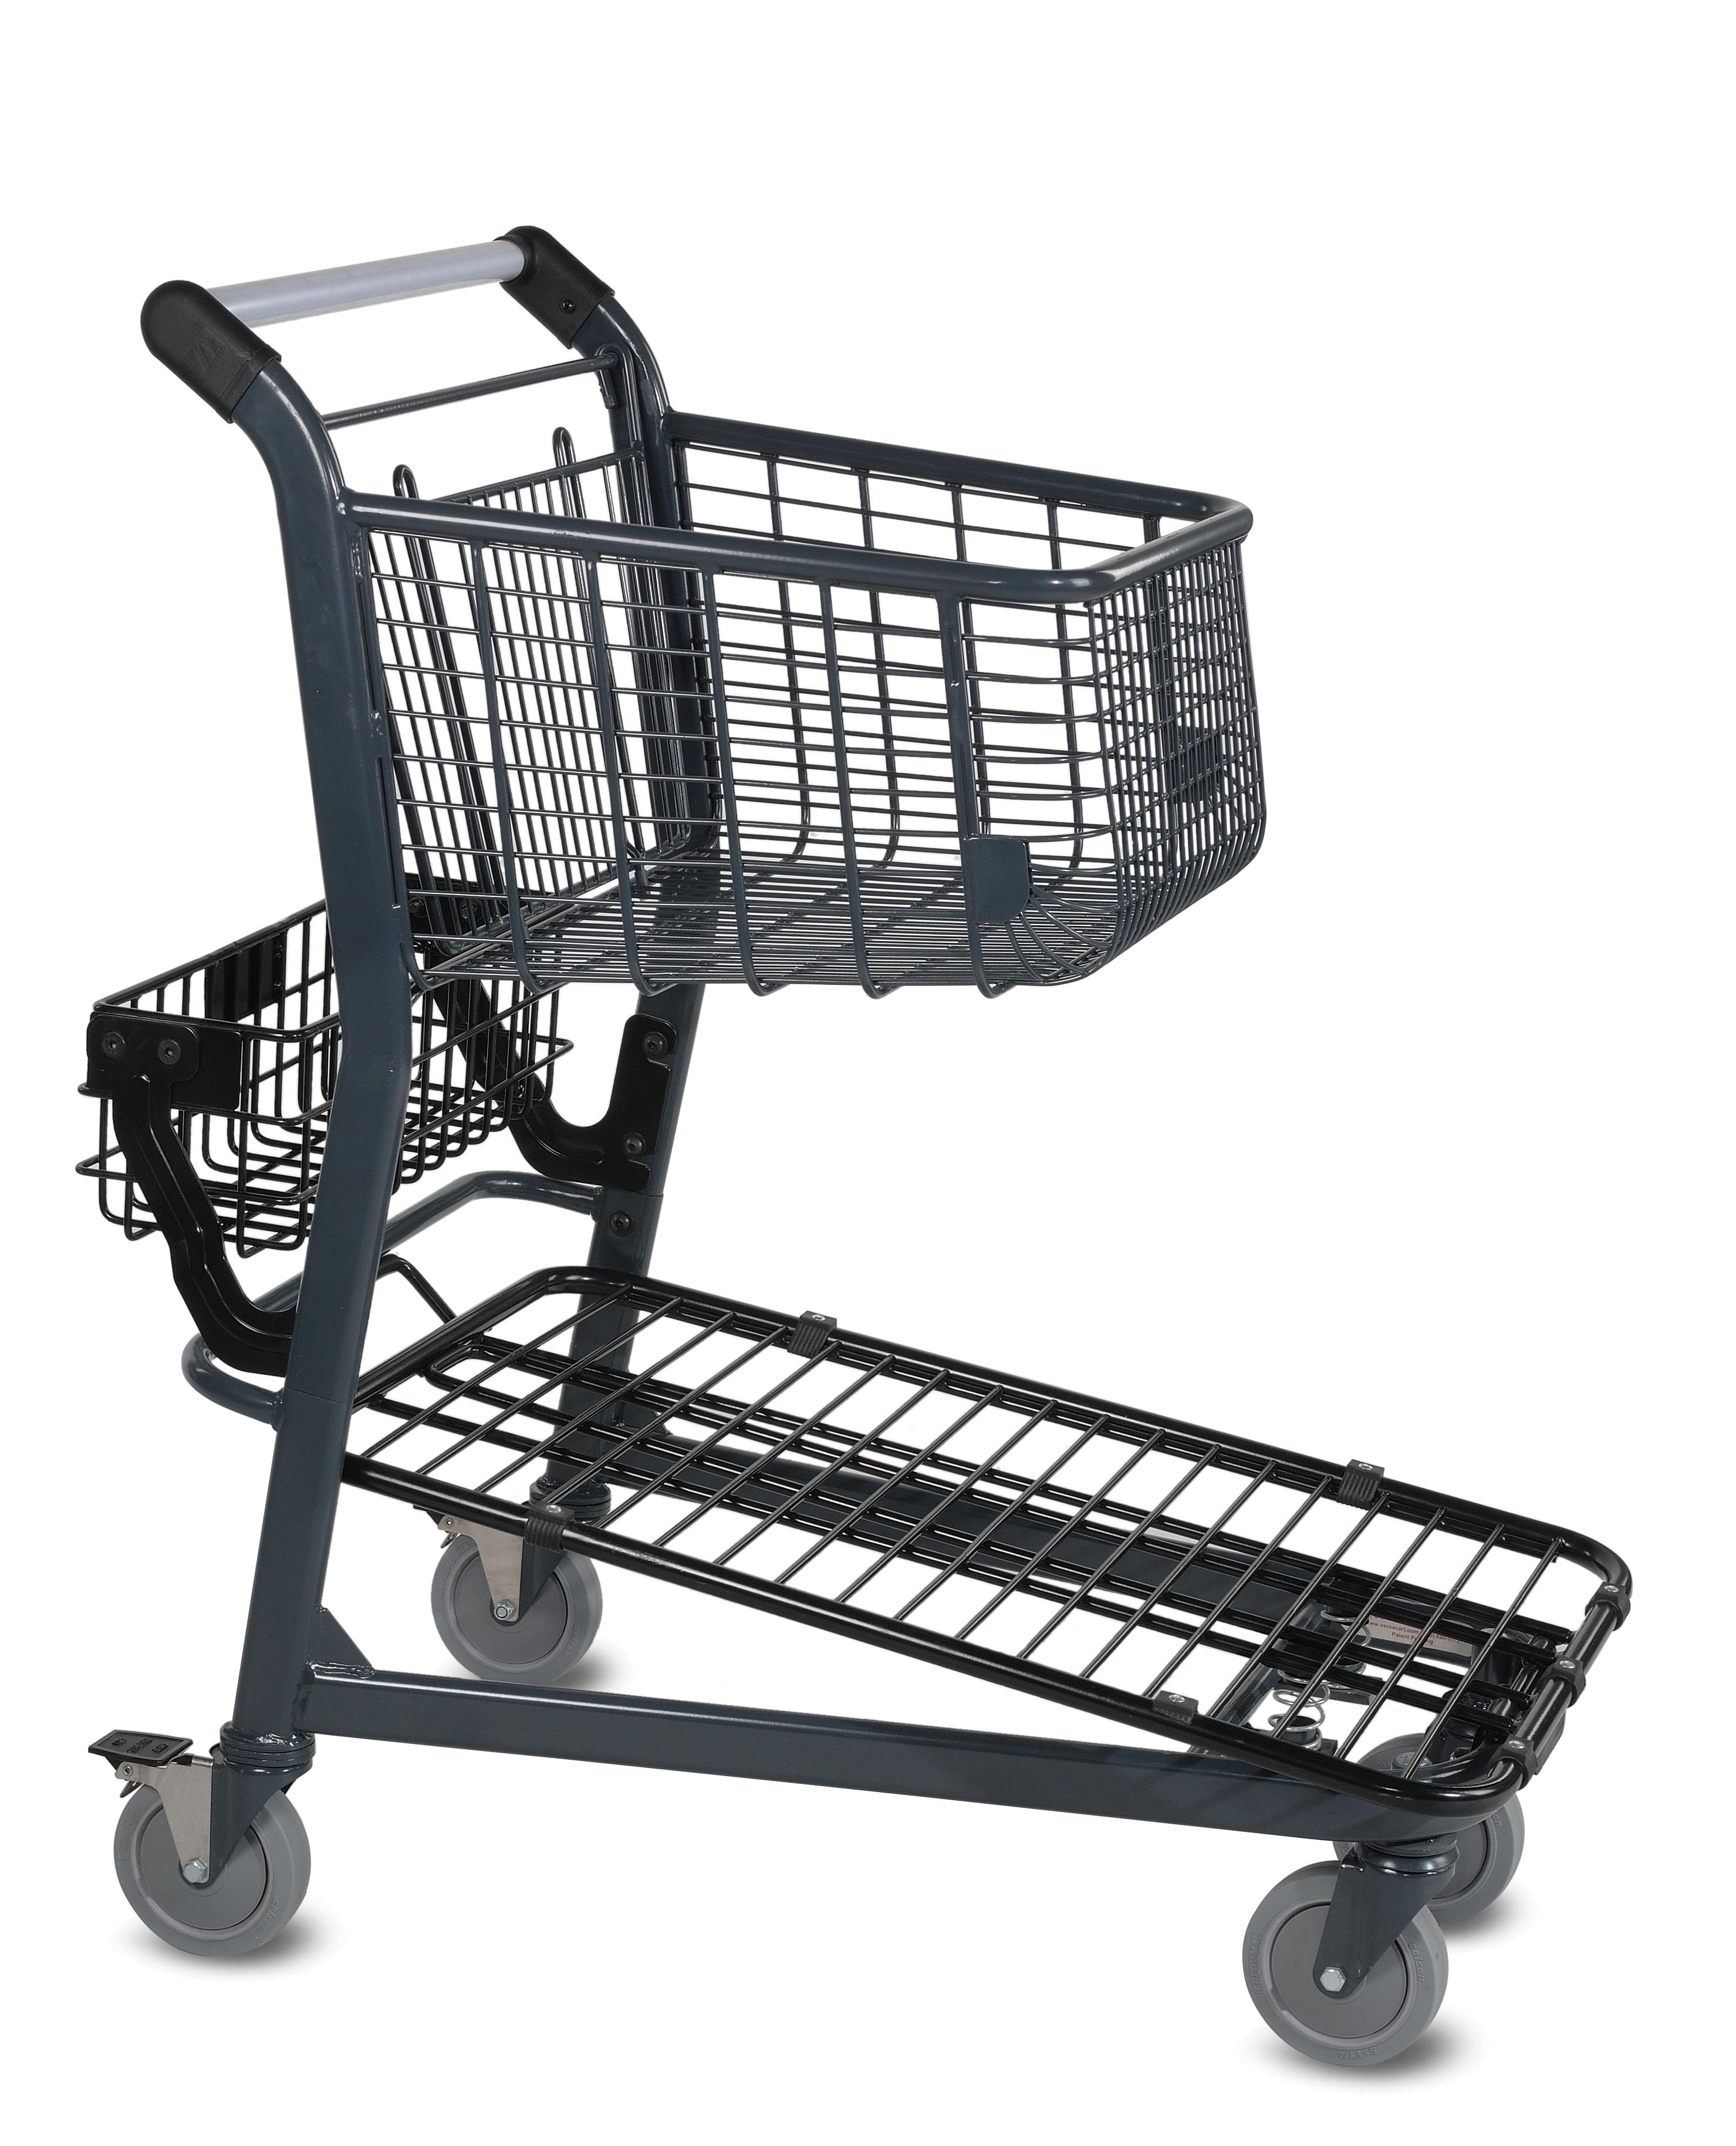 Uvd0001 Us Vietnam Era M60 Display Resin Machine Gun 19005 archive likewise Double Twisted Wire Walking Horse Bit further 913628 furthermore Vibo Pull Down Two Tier Wire Shelves For 600mm Width Wall Units also LuigiHoldingCap. on wire folding shopping cart